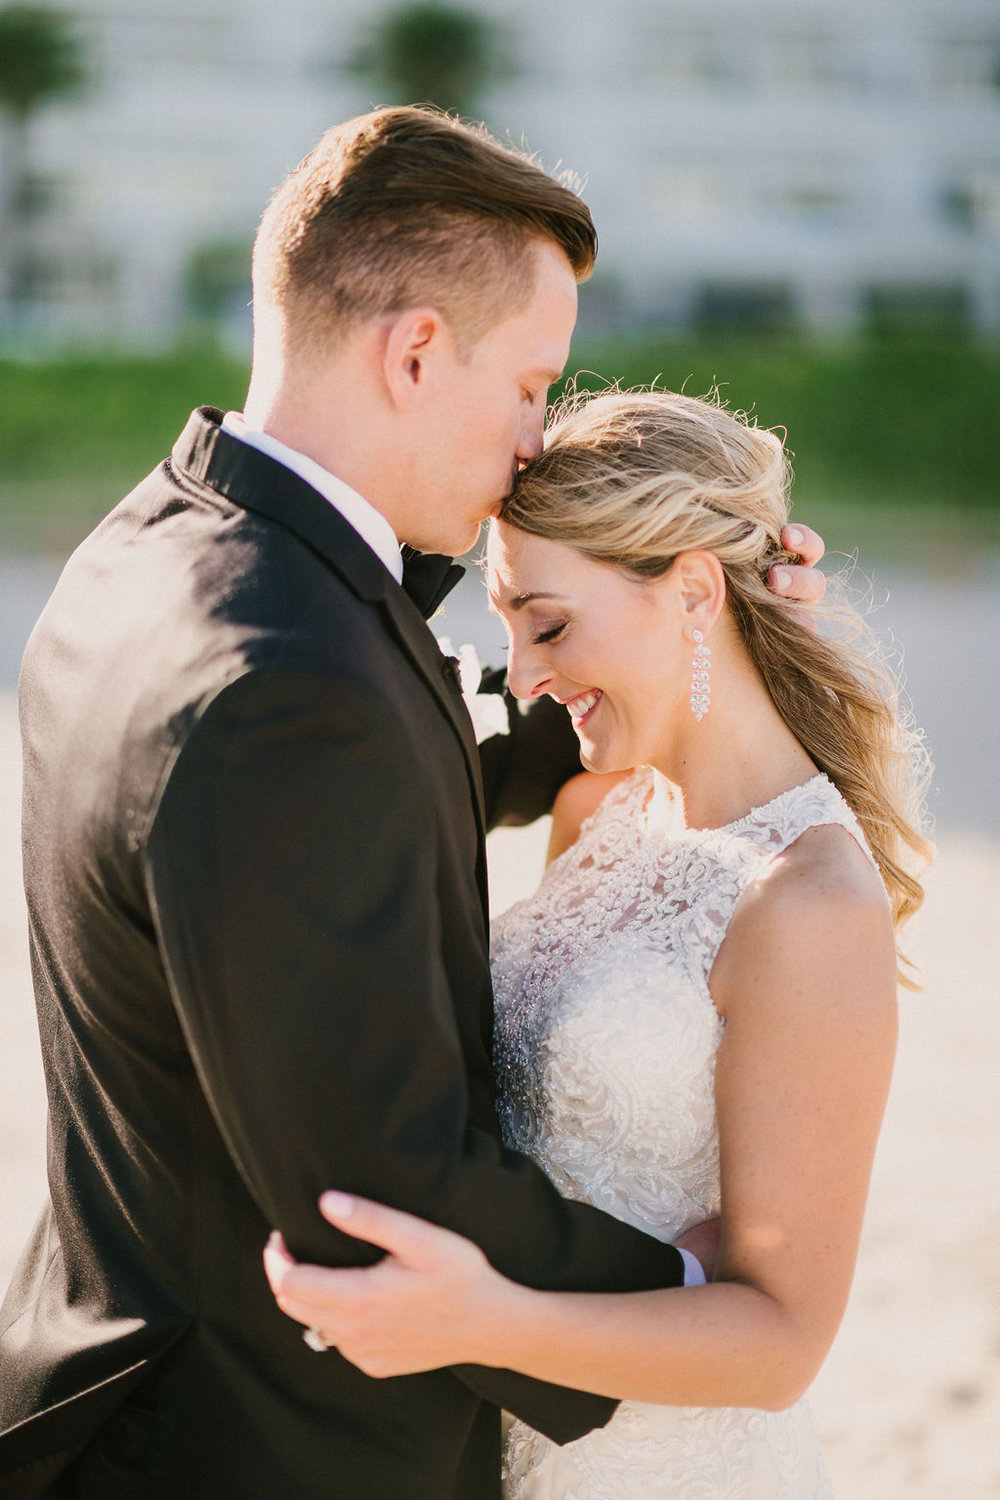 Natalie & Zack - This destination couple created a bold, tropical wedding weekend for their guests at the Marriott Harbor Beach Resort.